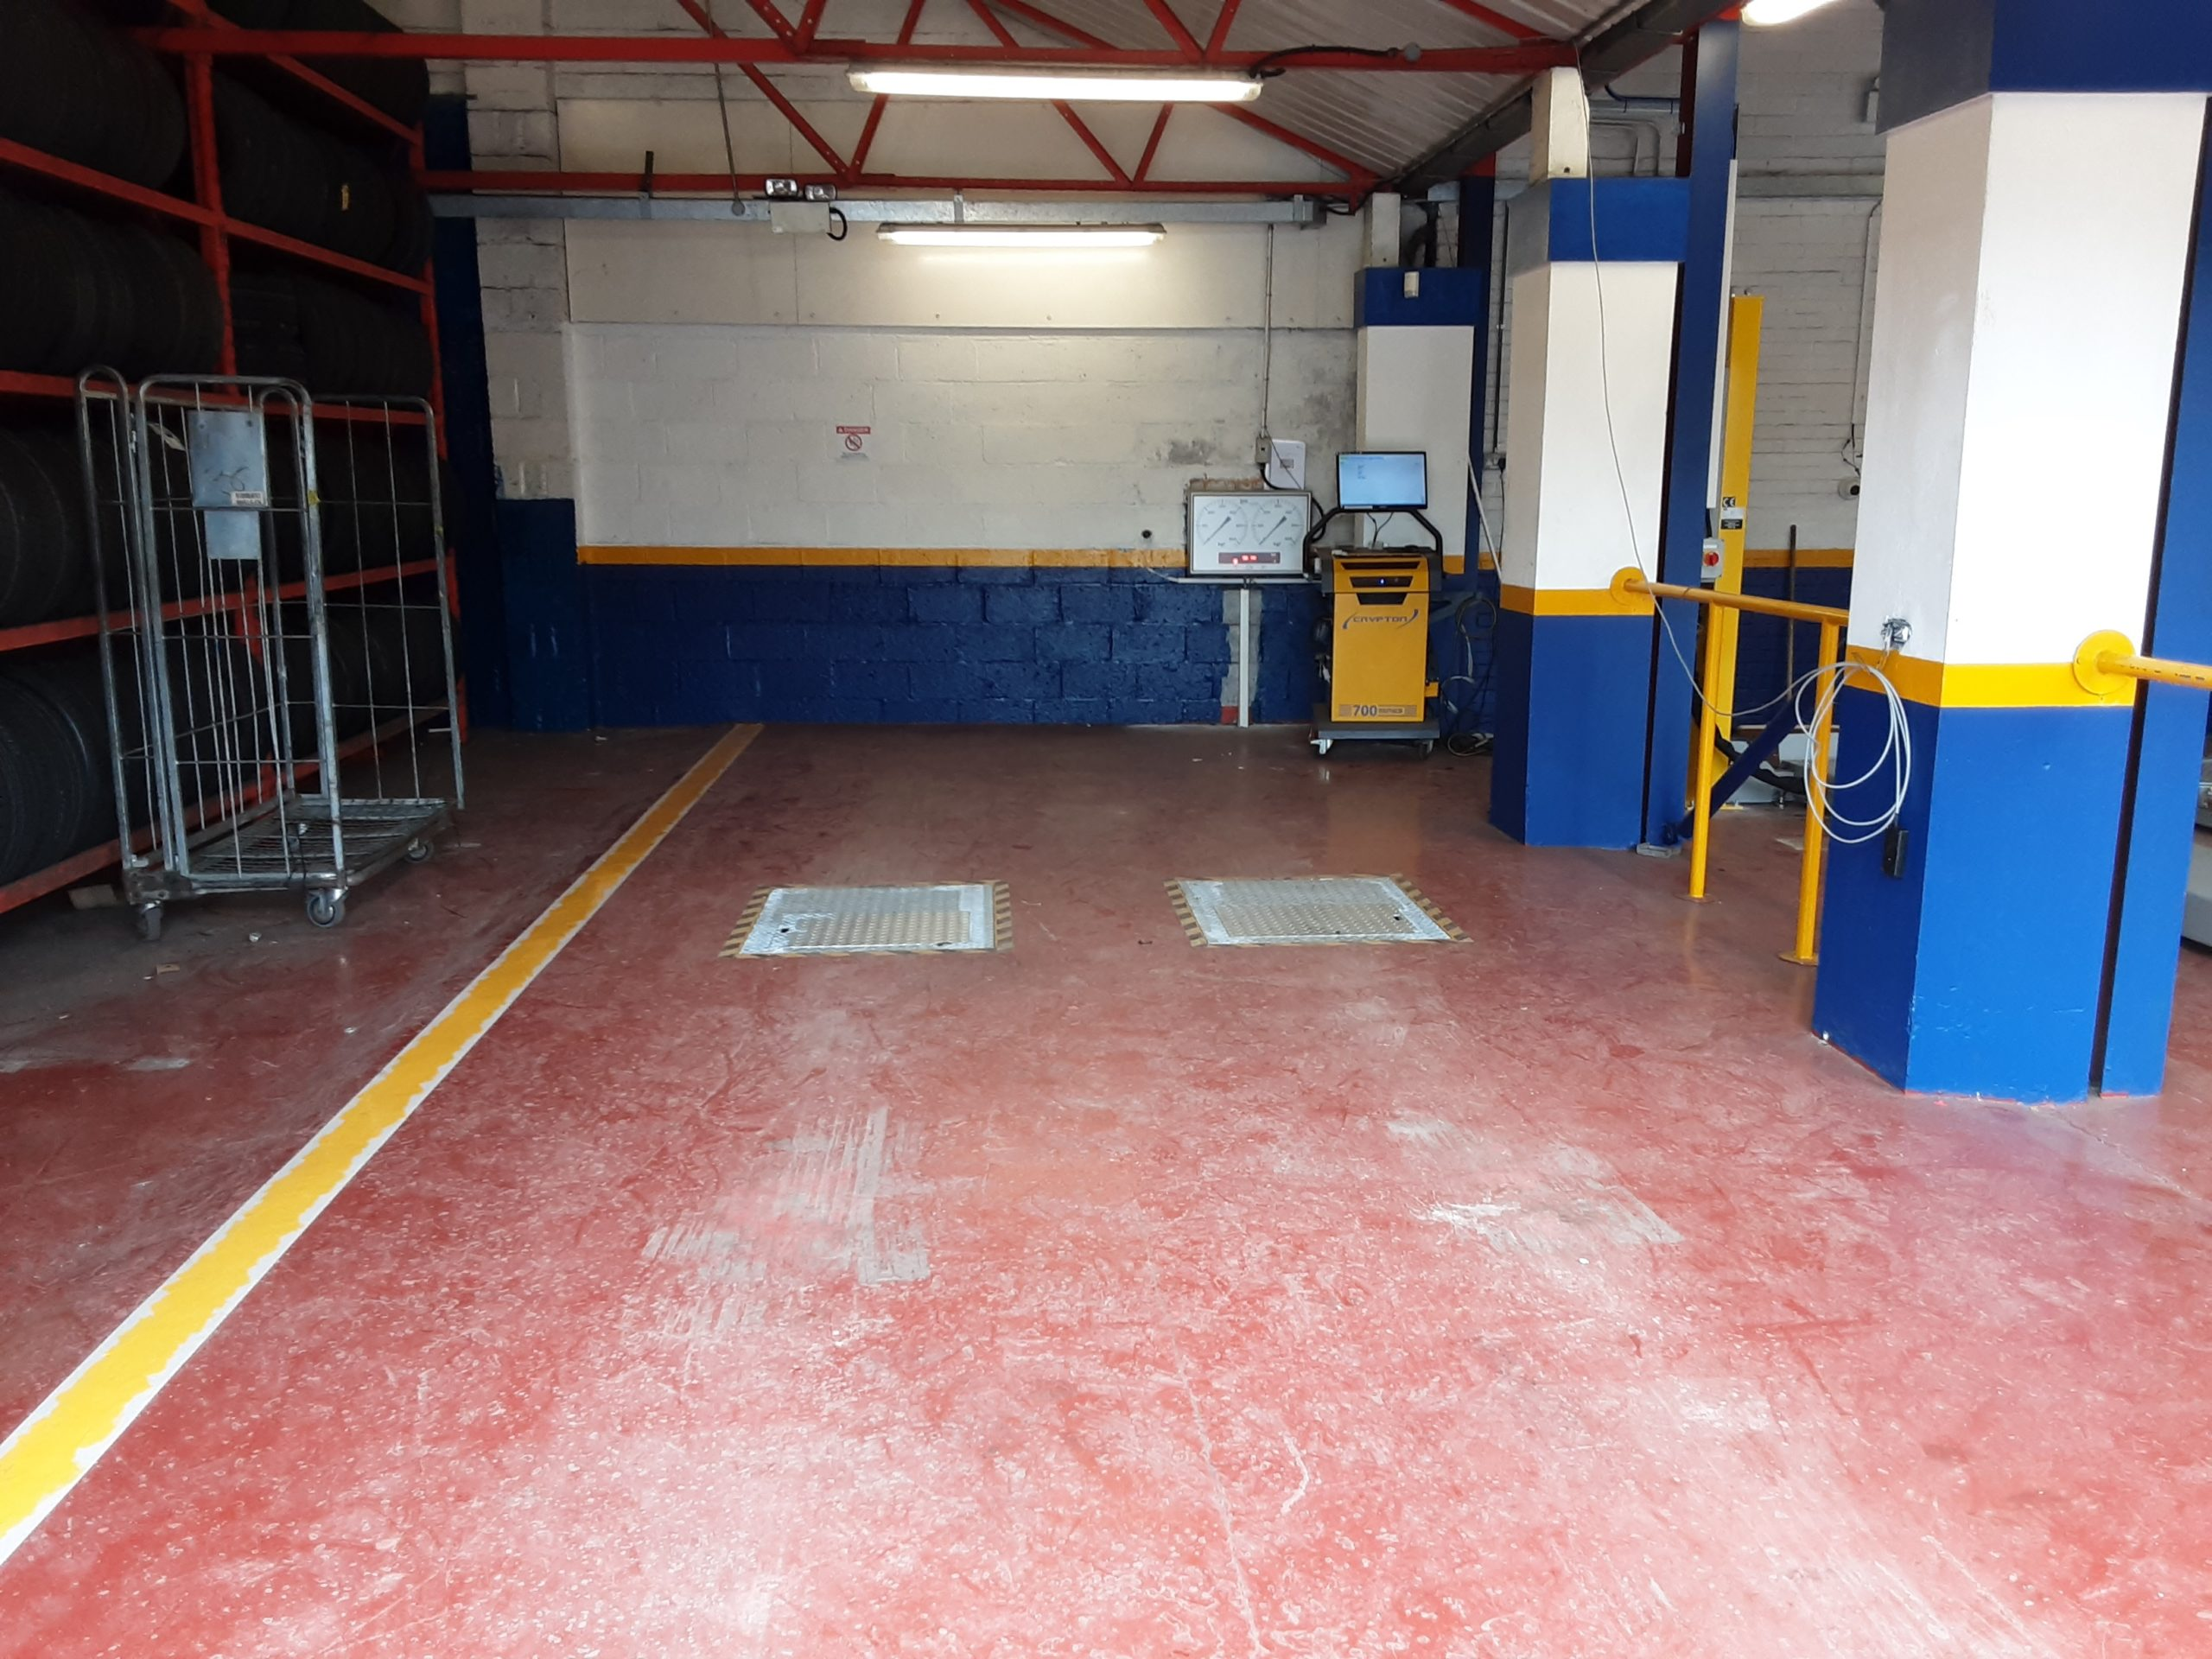 Due to the lack of space, the MOT Bay is side-by-side with the brake tester, which sits in a separate area to the lift.